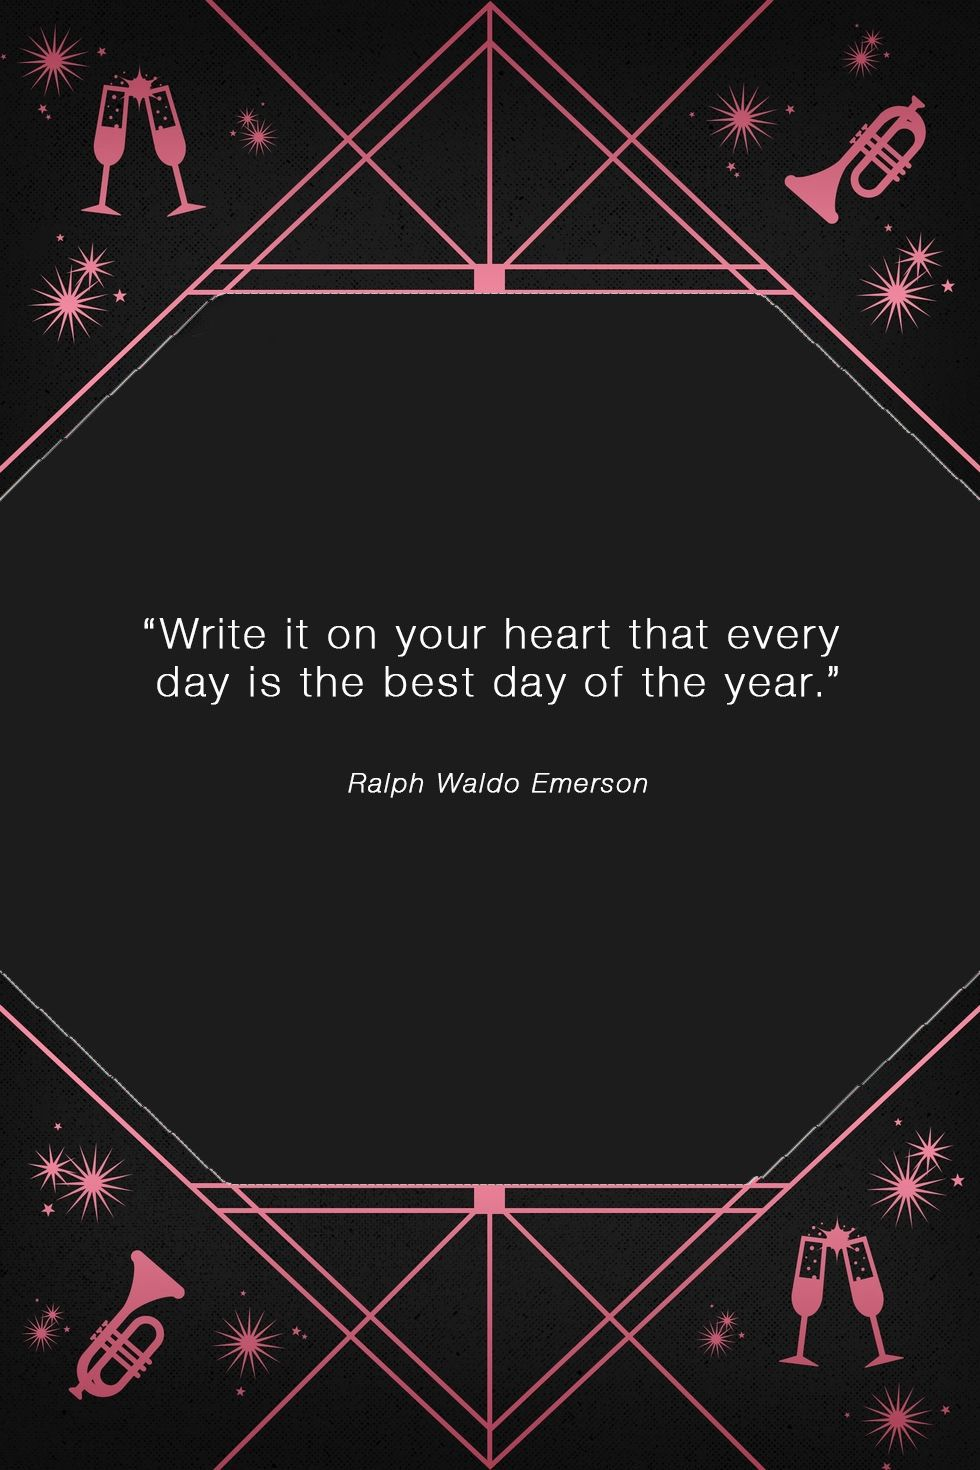 Image of: Sayings 25 Best New Year Quotes About Home Hospitality And Family Elle Decor 25 Best New Years Eve Quotes About Home Friends And Family Fun